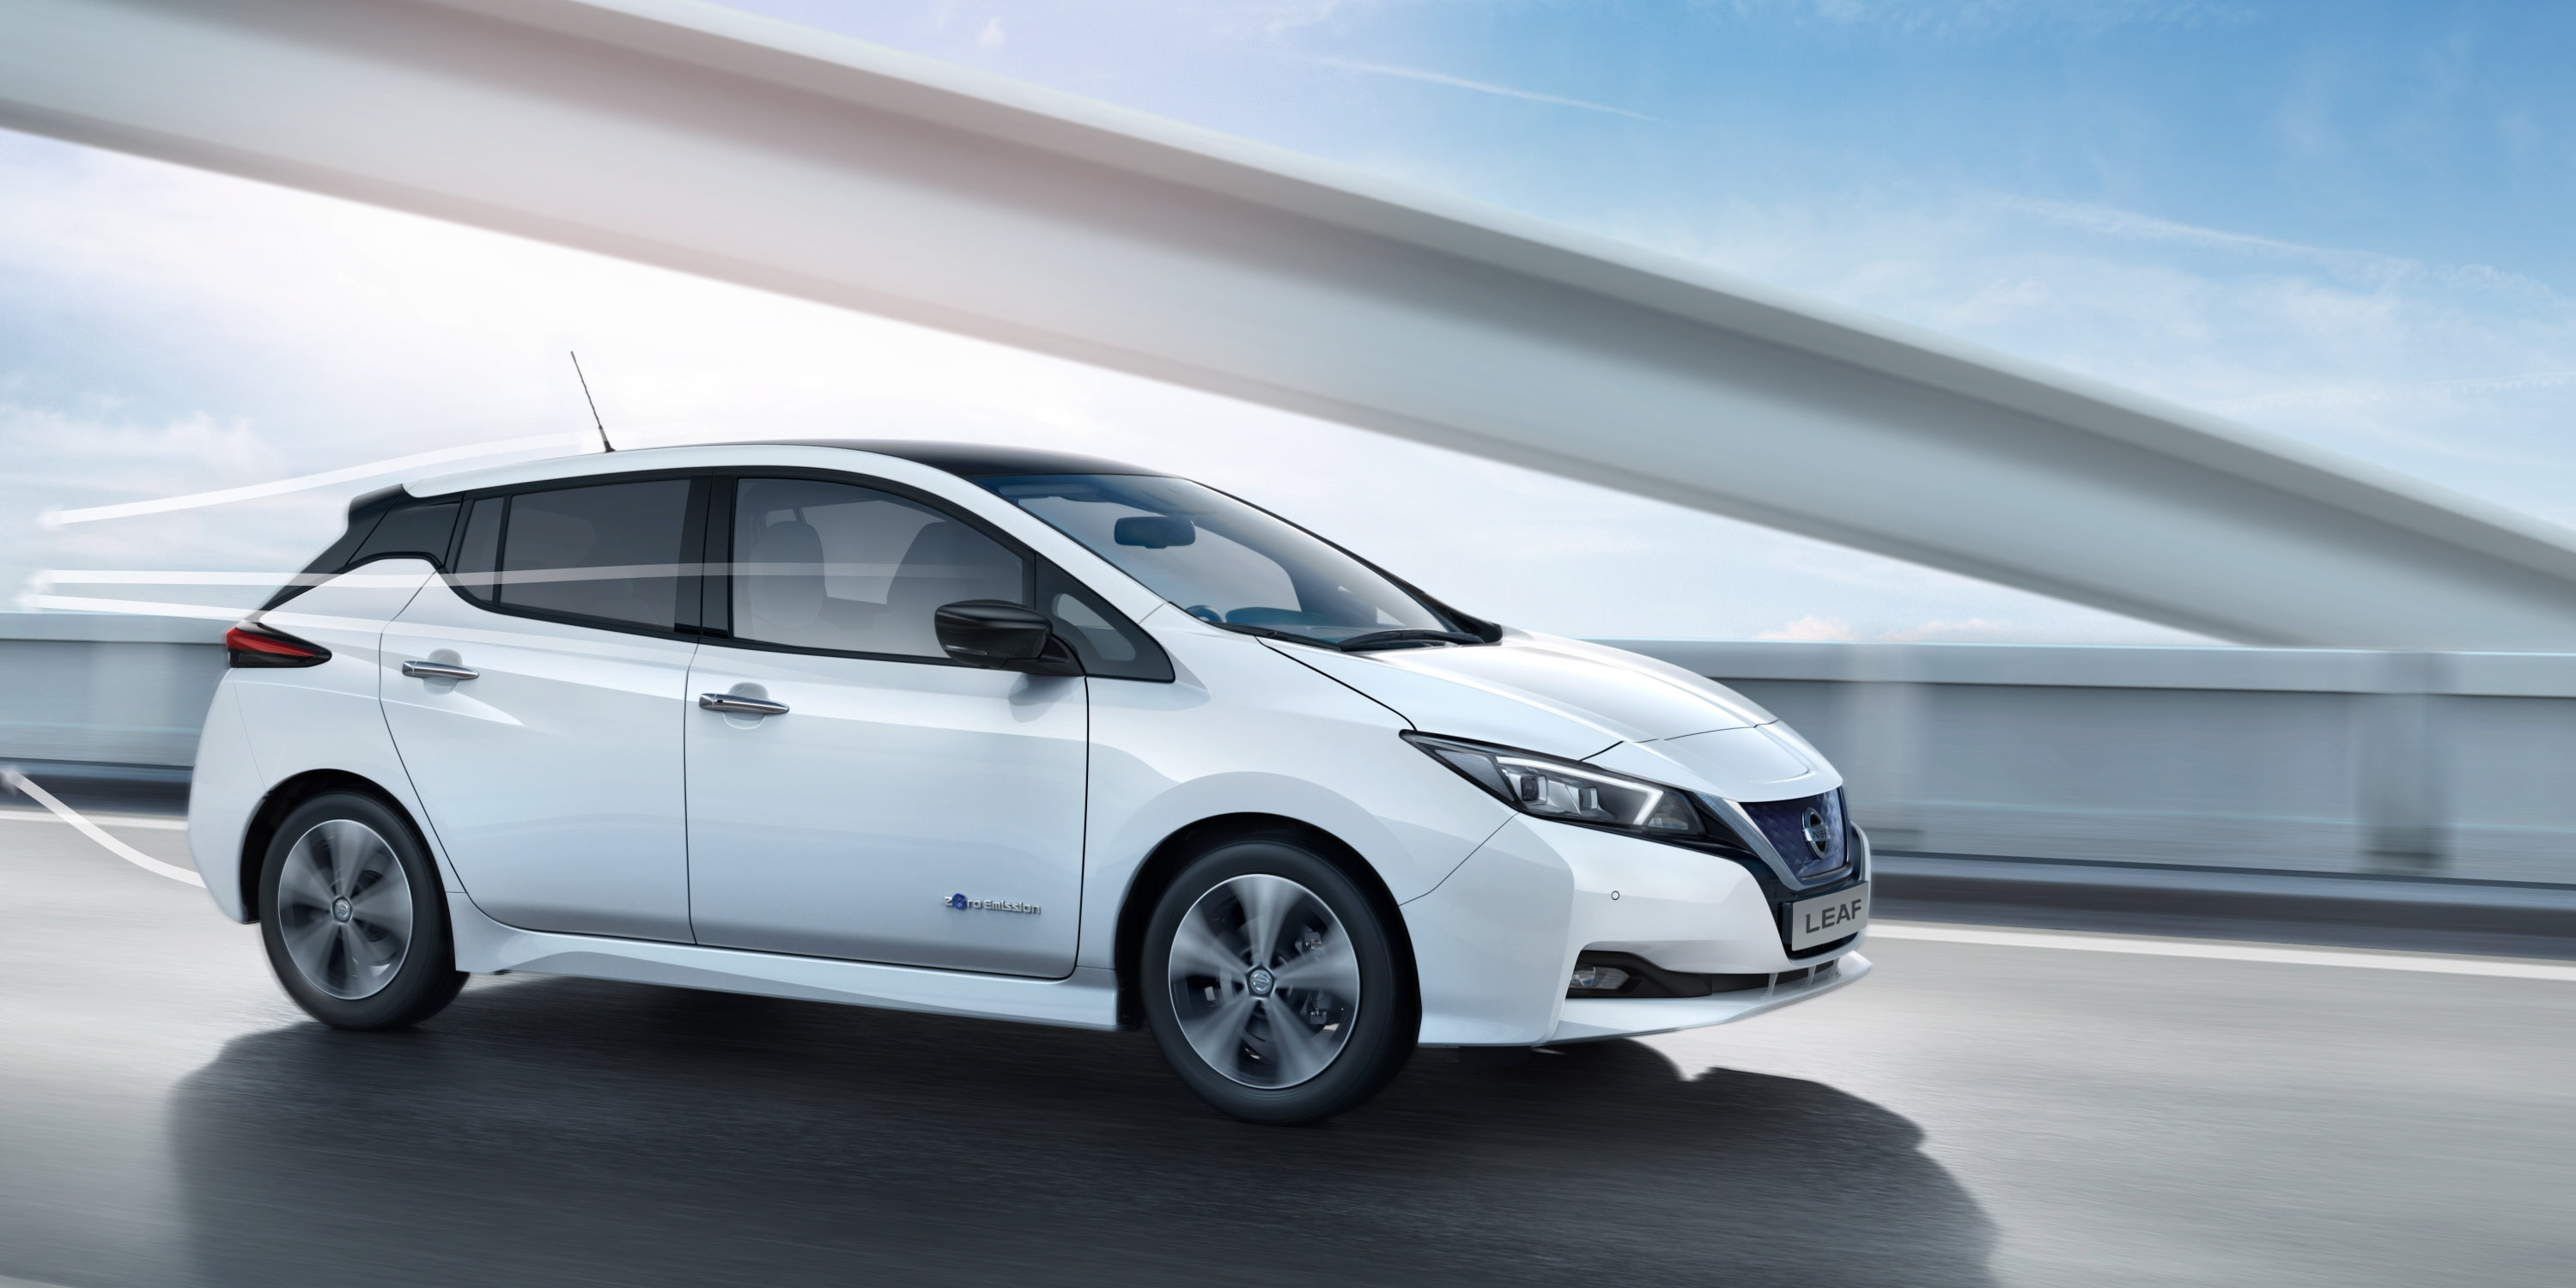 Nissan LEAF driving on a bridge with graphic lines moving over it showing aerodynamics